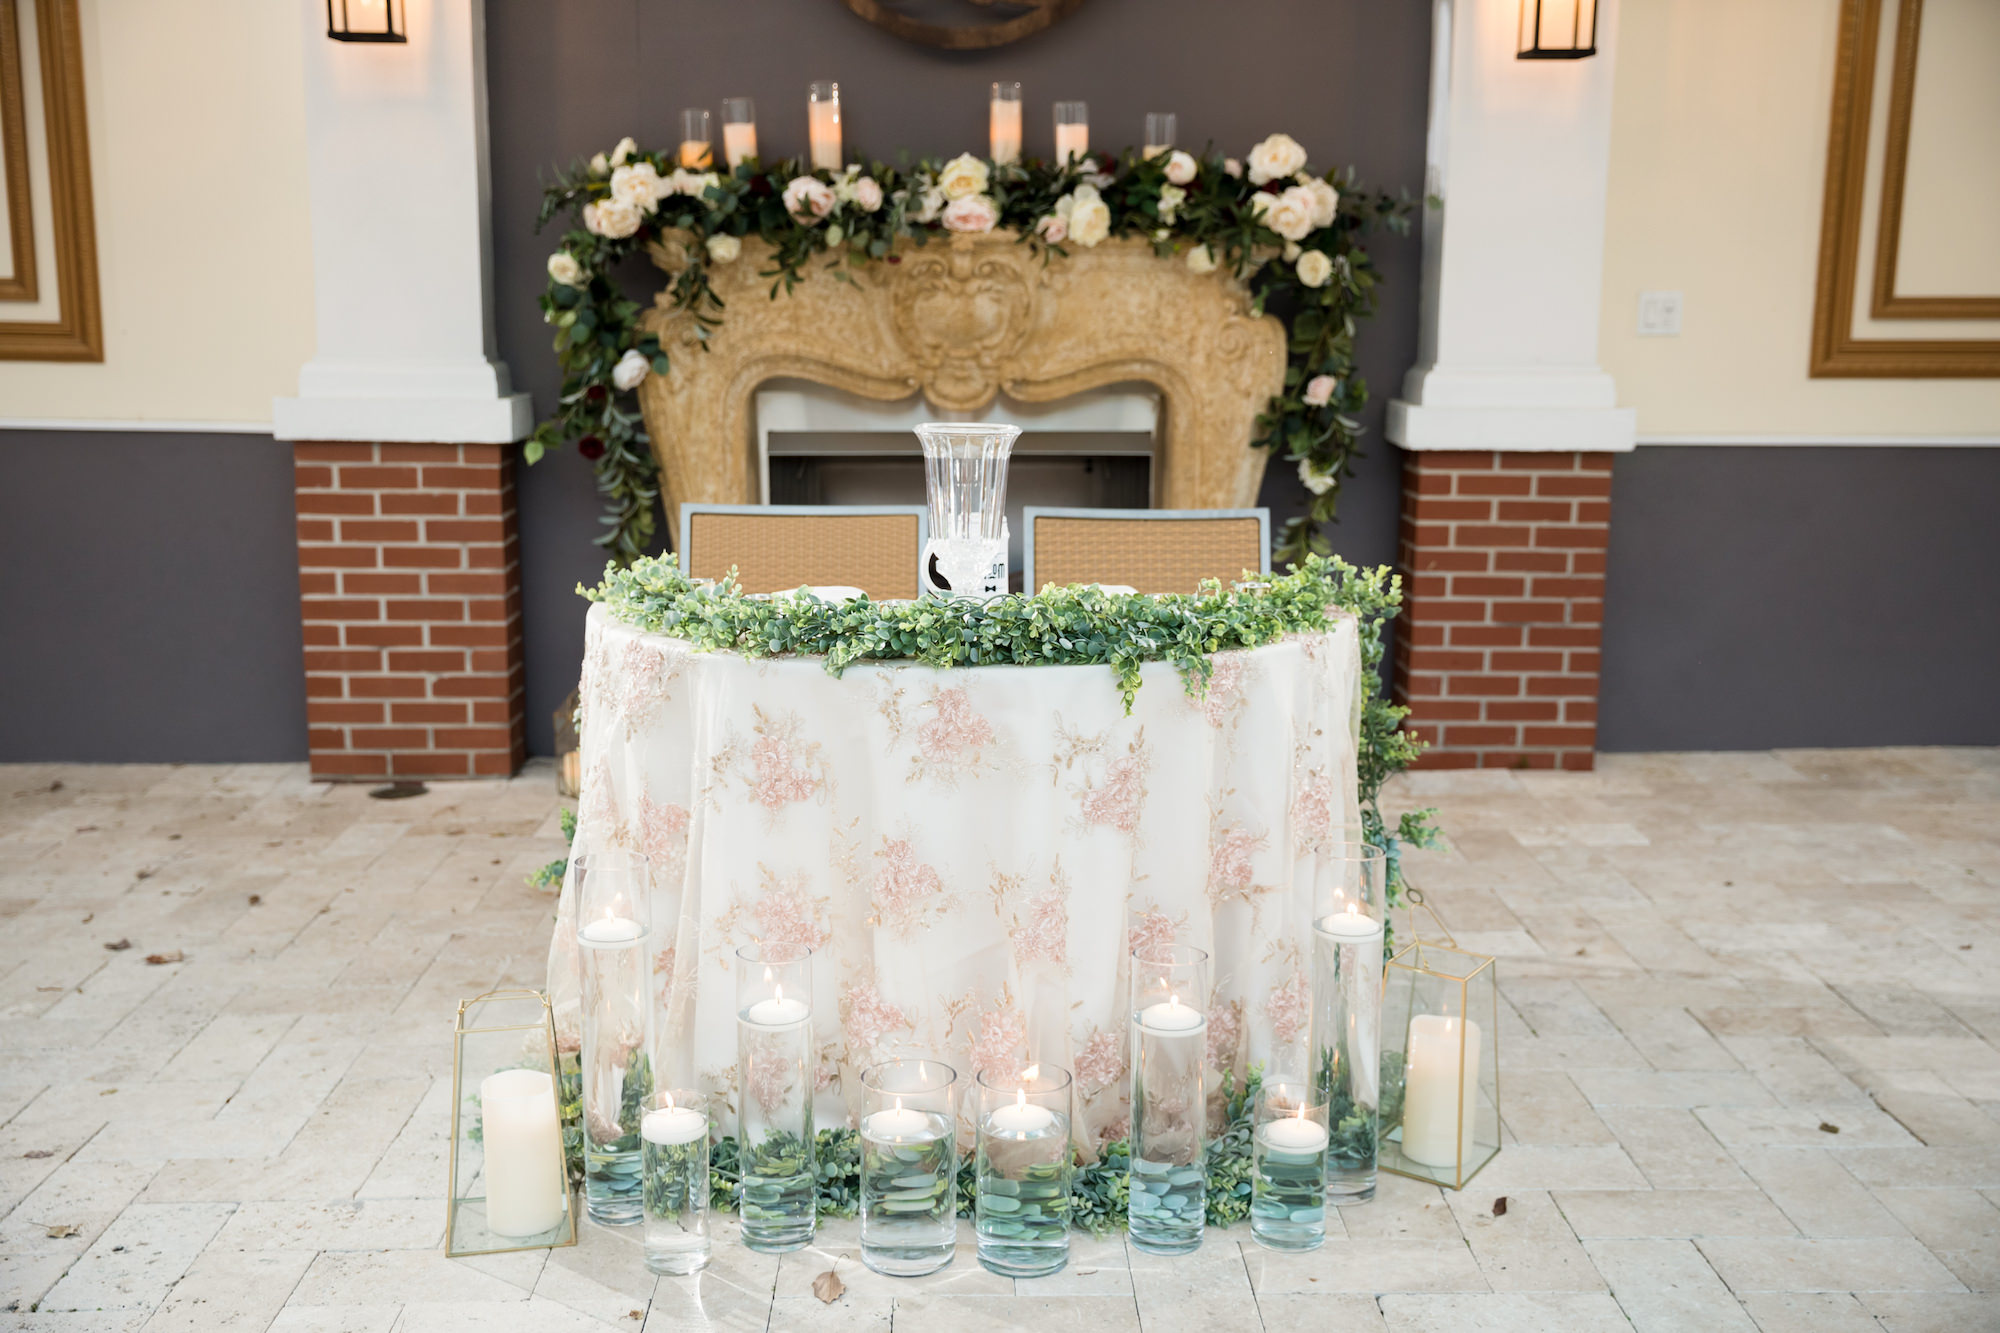 Classic Elegant Wedding Reception Decor, Sweetheart Table with Blush Pink Floral Linen, Floating Candles in High Low Hurricane Glass Vases, Greenery Garland, Ivory Roses, Fireplace Backdrop   Tampa Wedding Venue Palmetto Riverside Bed and Breakfast   Wedding Planner Coastal Coordinating